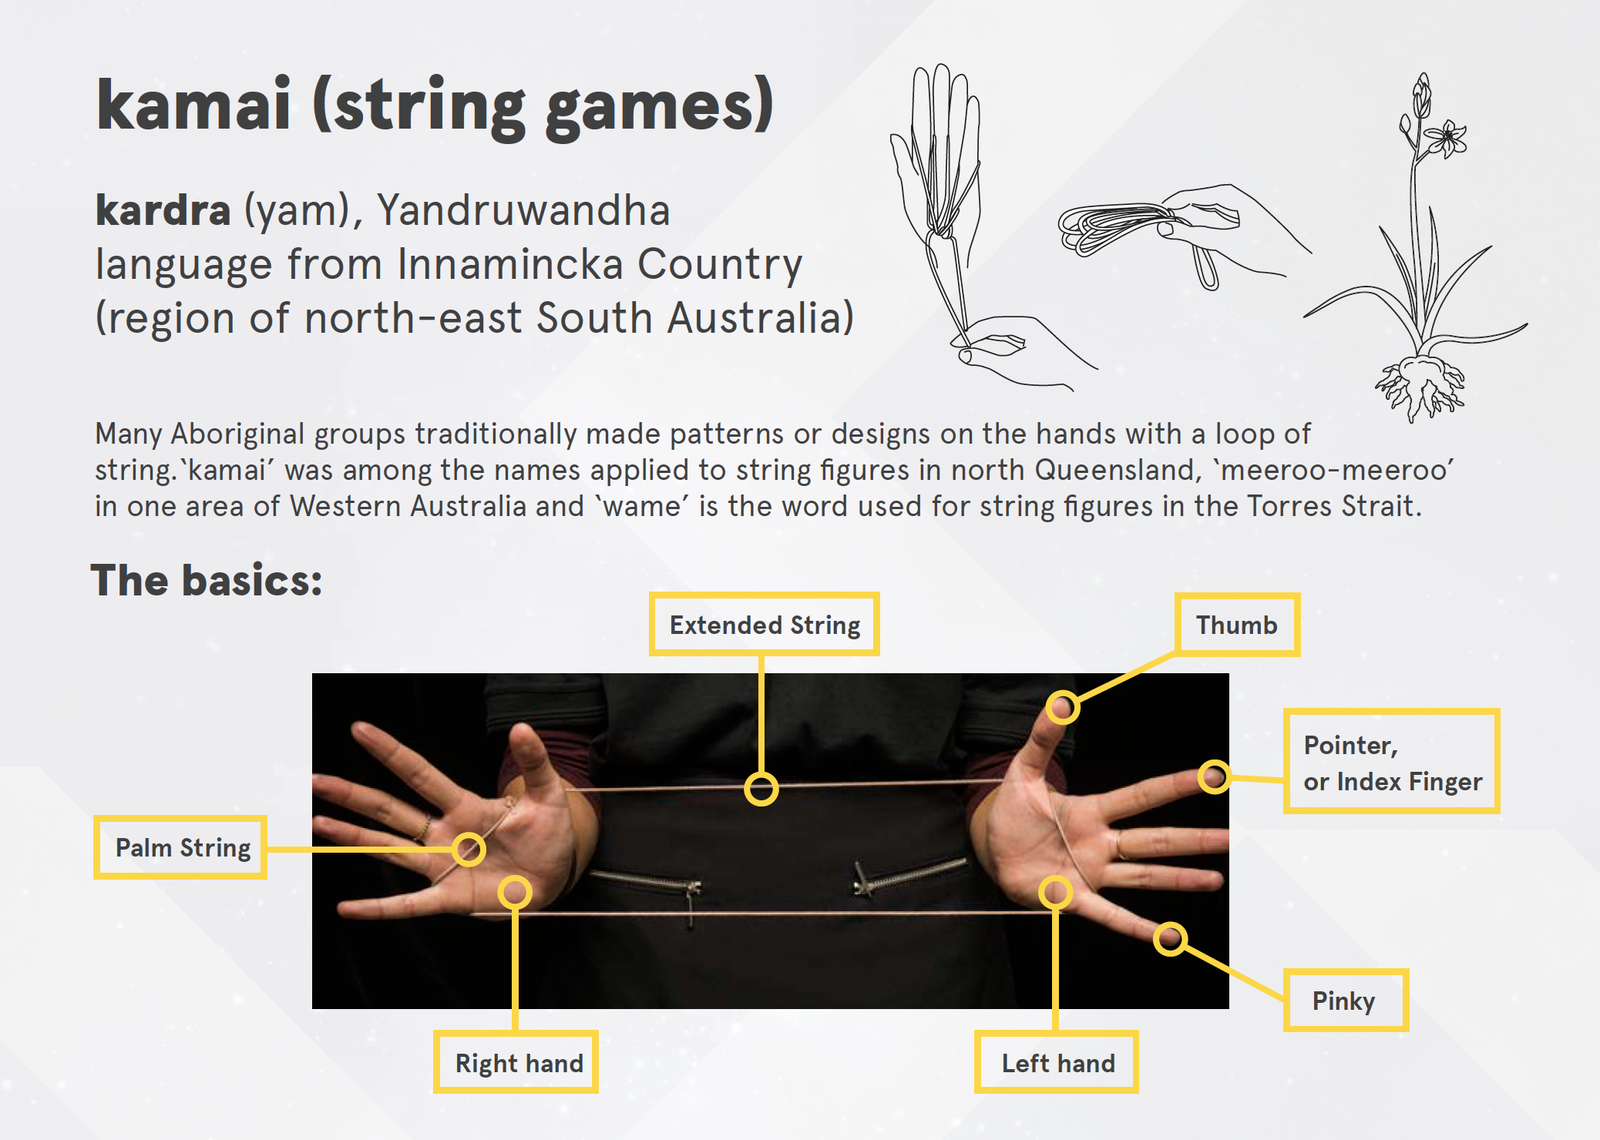 kardra (yam) string figure instructions